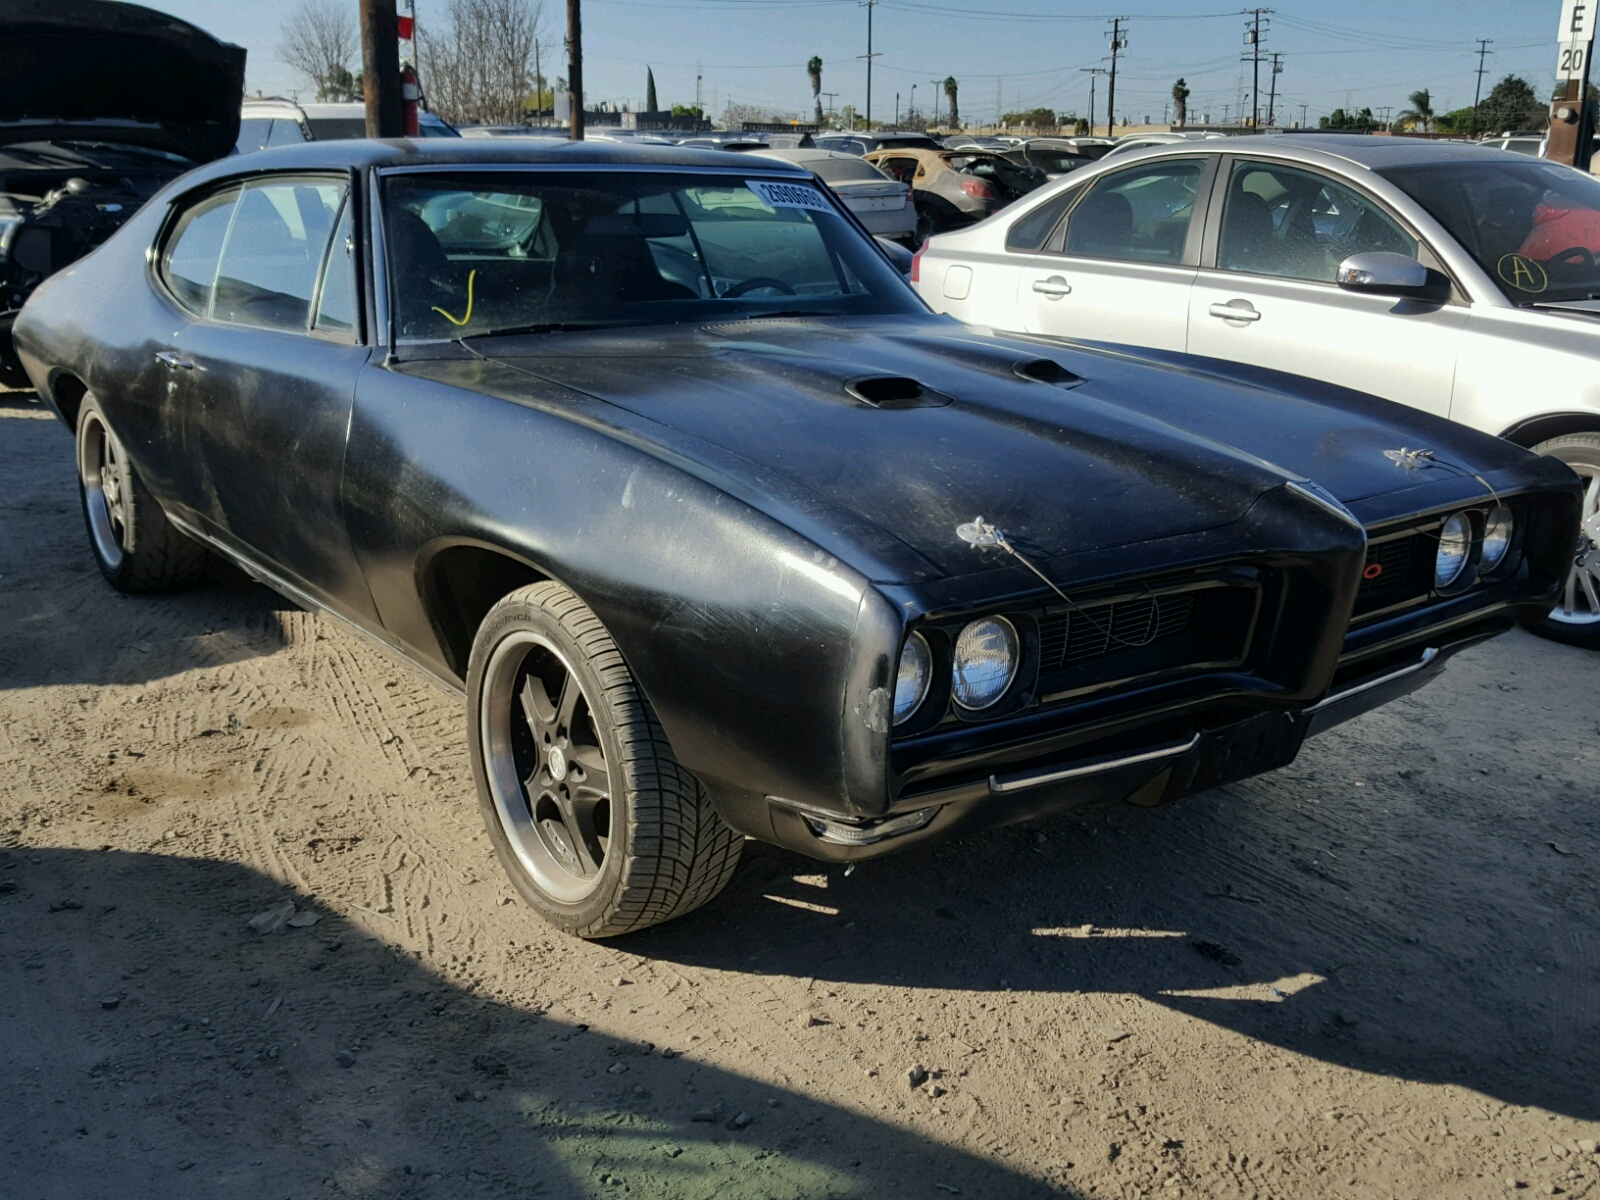 Cash Cars For Sale In Houston Tx: 1969 Pontiac GTO For Sale At Copart Houston, TX Lot# 40620687